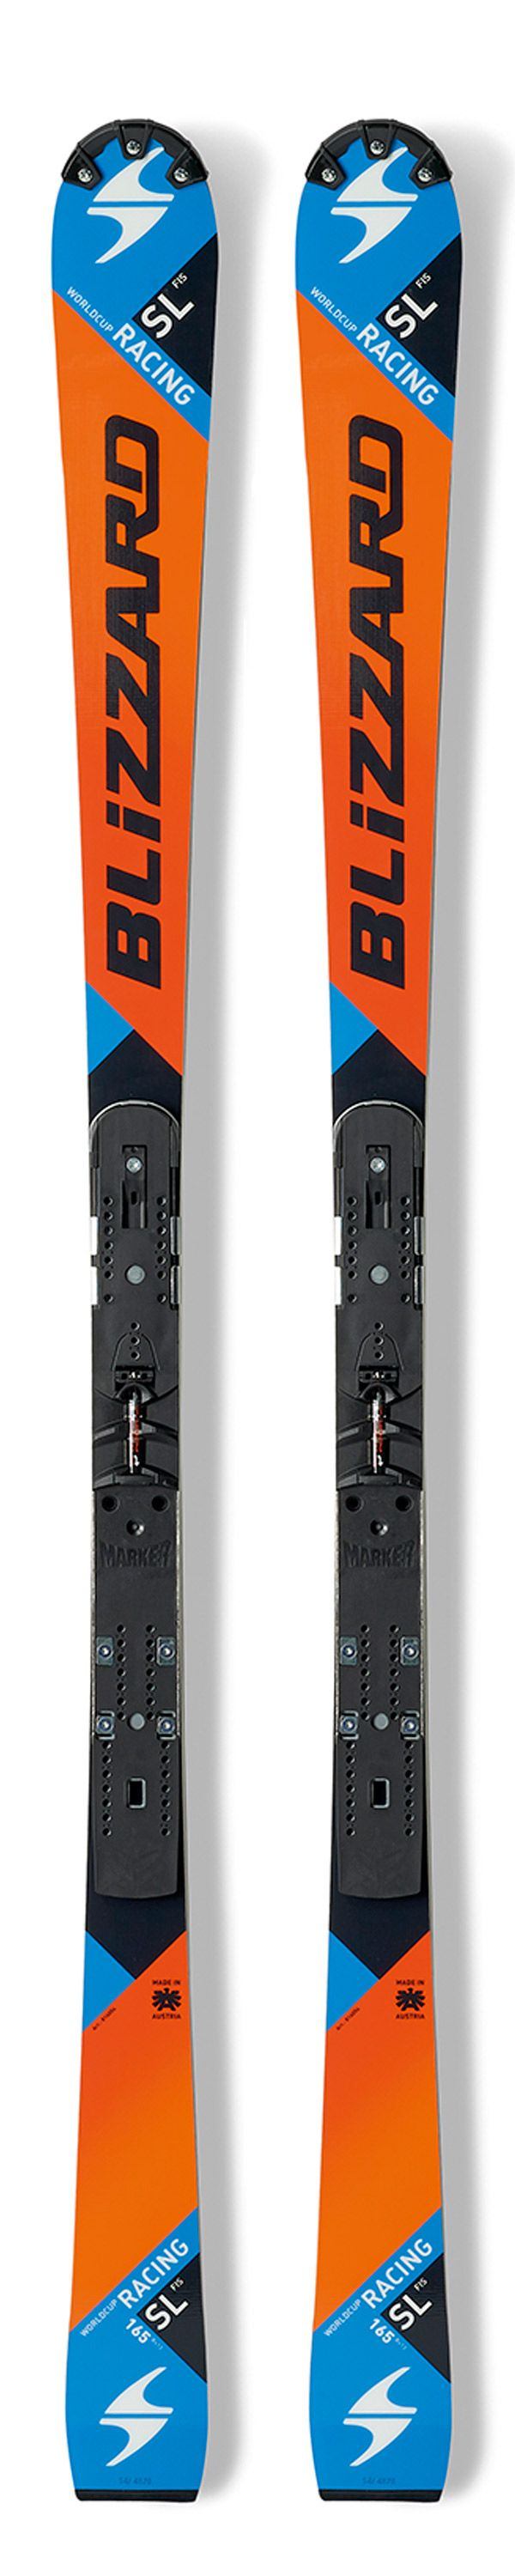 Горные лыжи Blizzard 2015-16 SL FIS-RACING (FLAT+PLATE) ORANGE-BLACK-BLUE